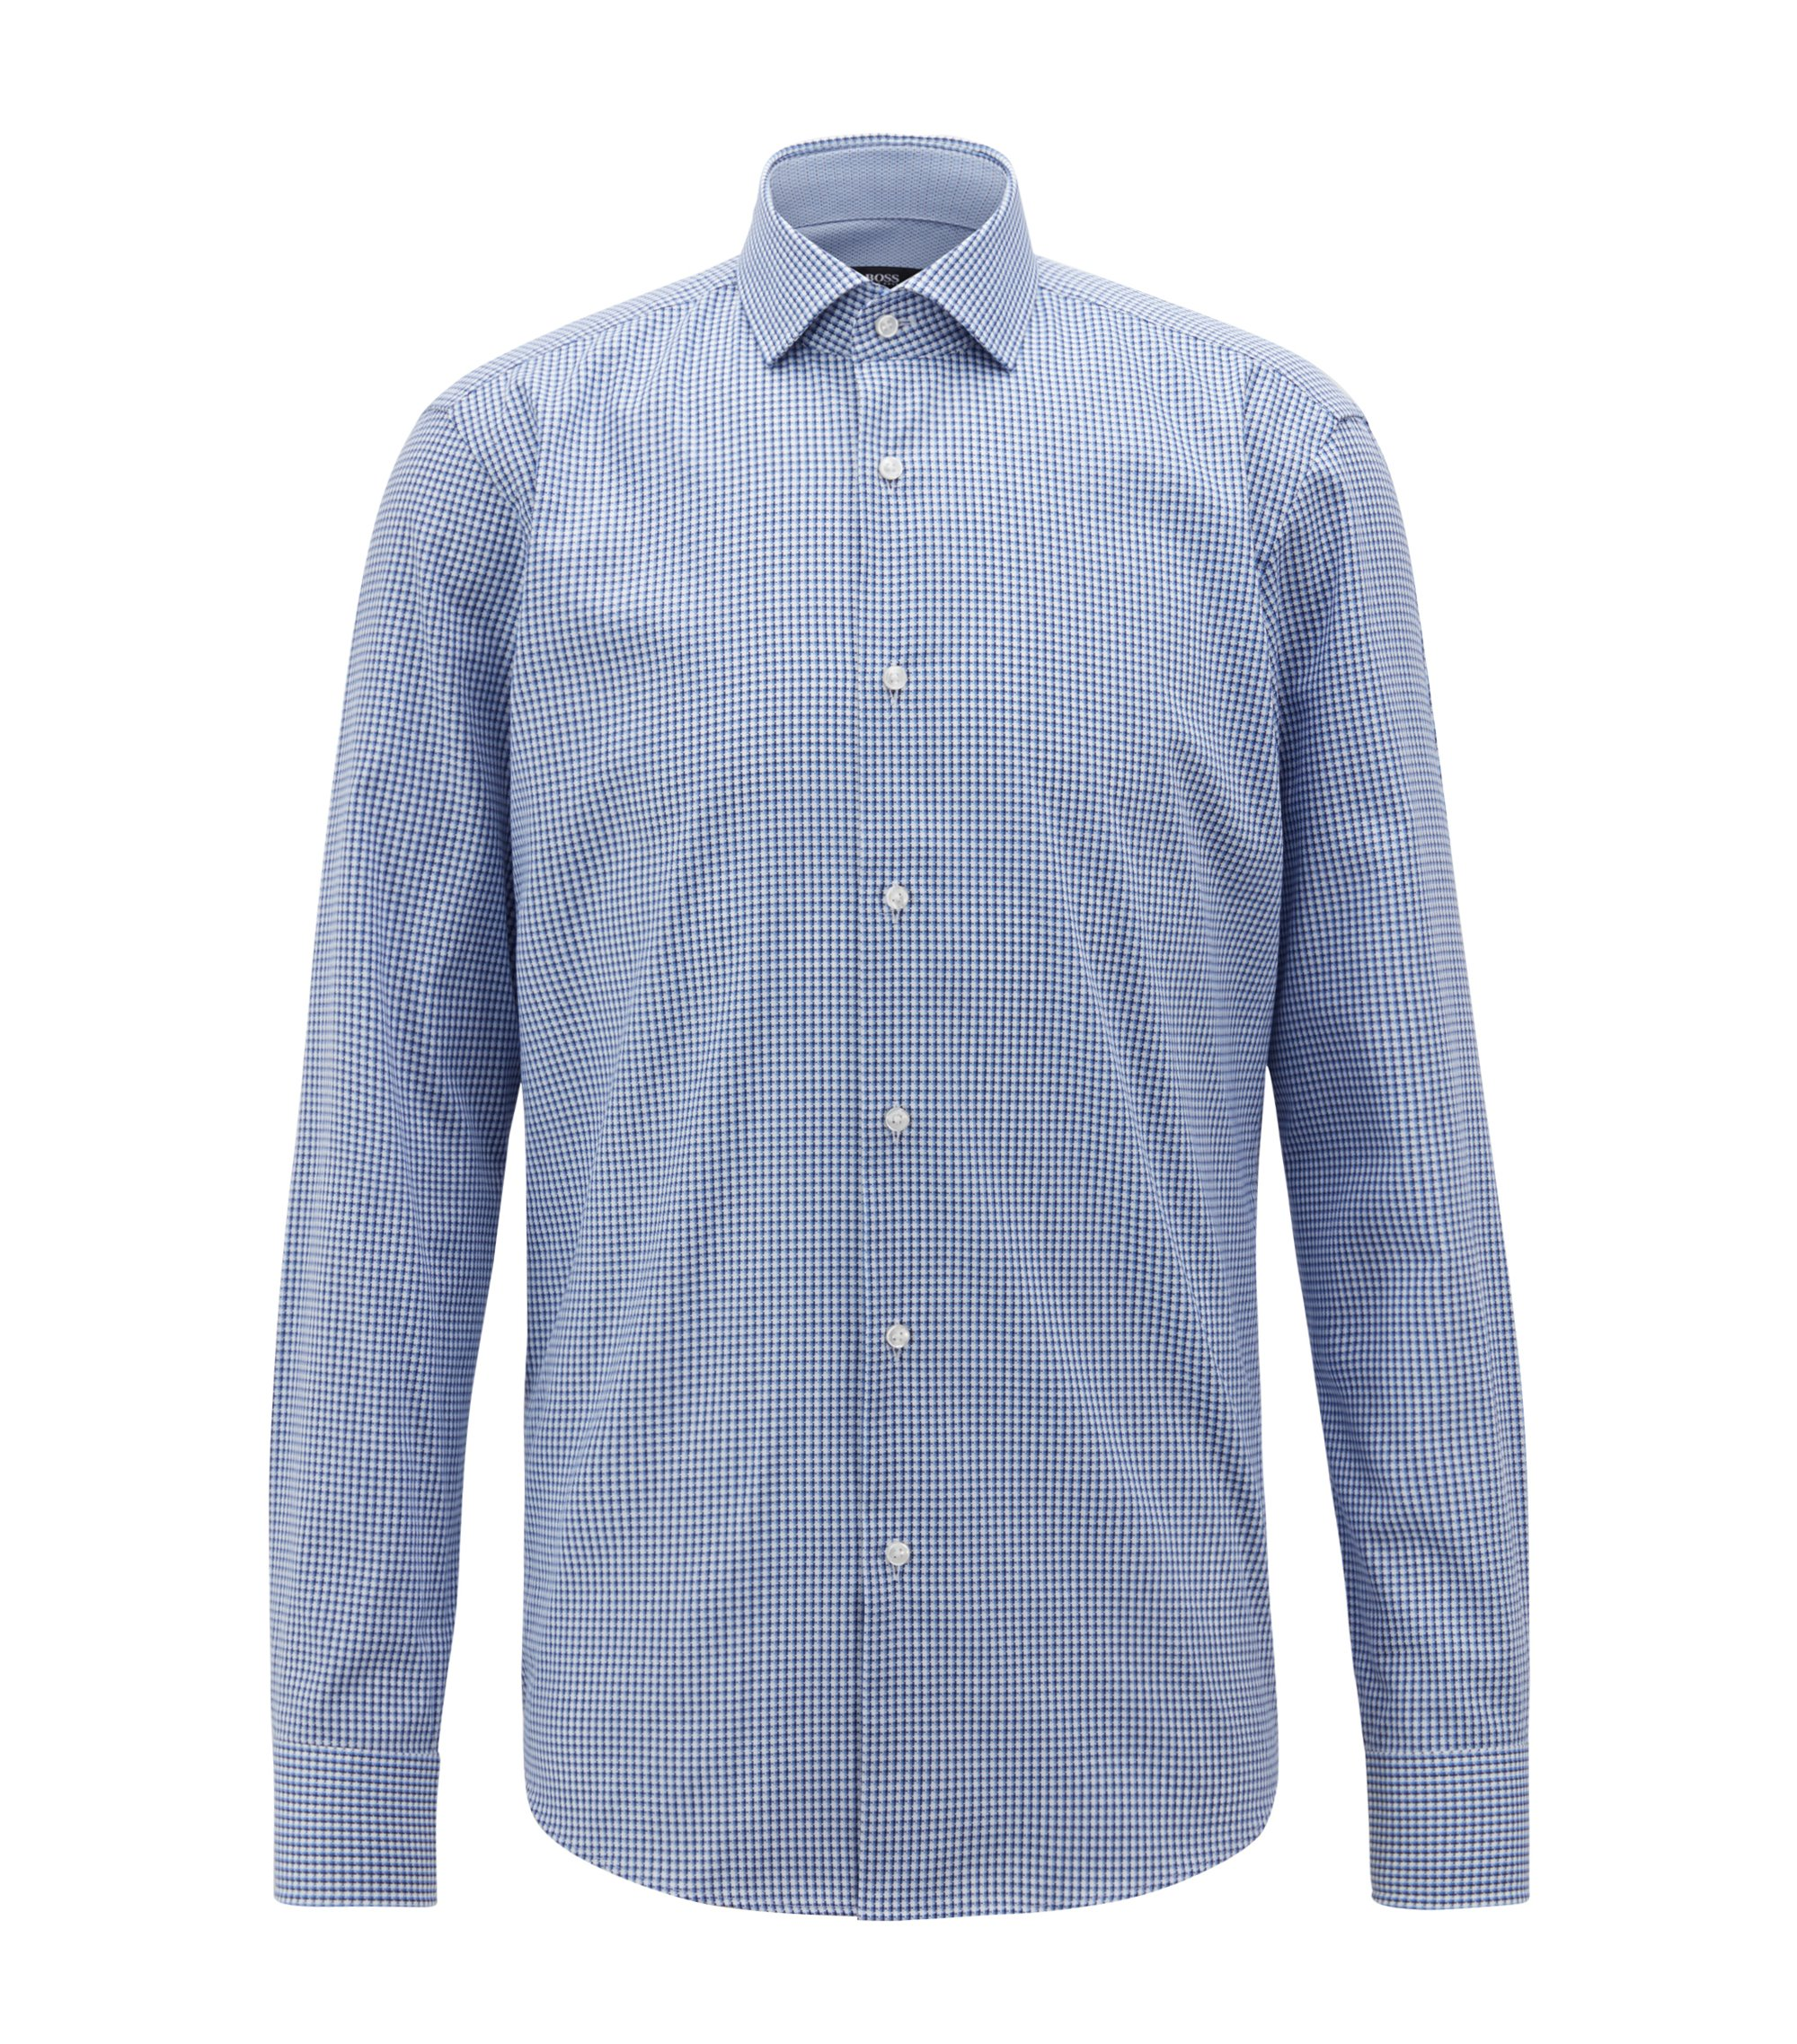 Regular-fit shirt in Italian-made checked cotton, Blue